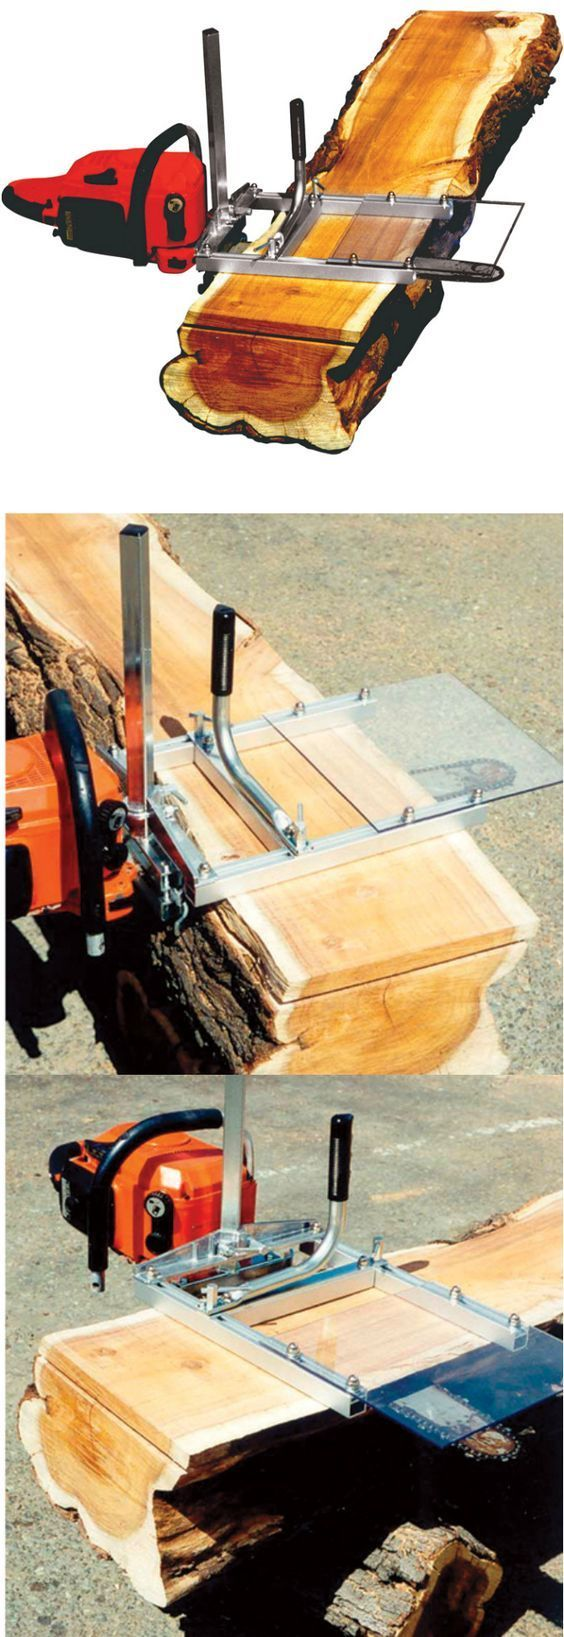 Granberg Chain Saw Mill Cut Your Own Lumber Like A Boss  # Muebles Rial Asados